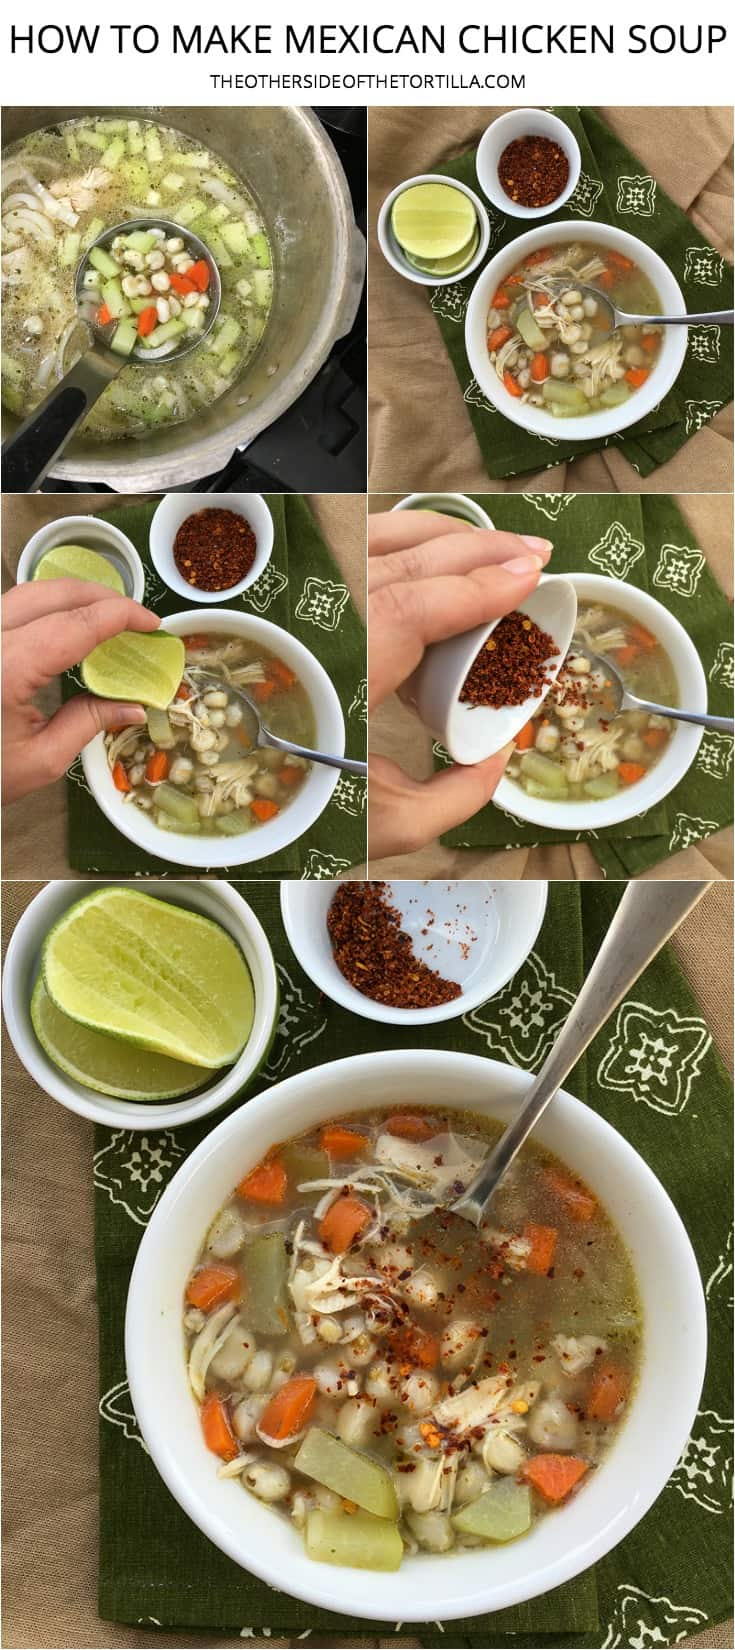 How to make the best Mexican chicken soup with carrots, onion, Mexican oregano, chayote, hominy, barley and finish the flavor with lime juice and chile powder! Recipe via theothersideofthetortilla.com